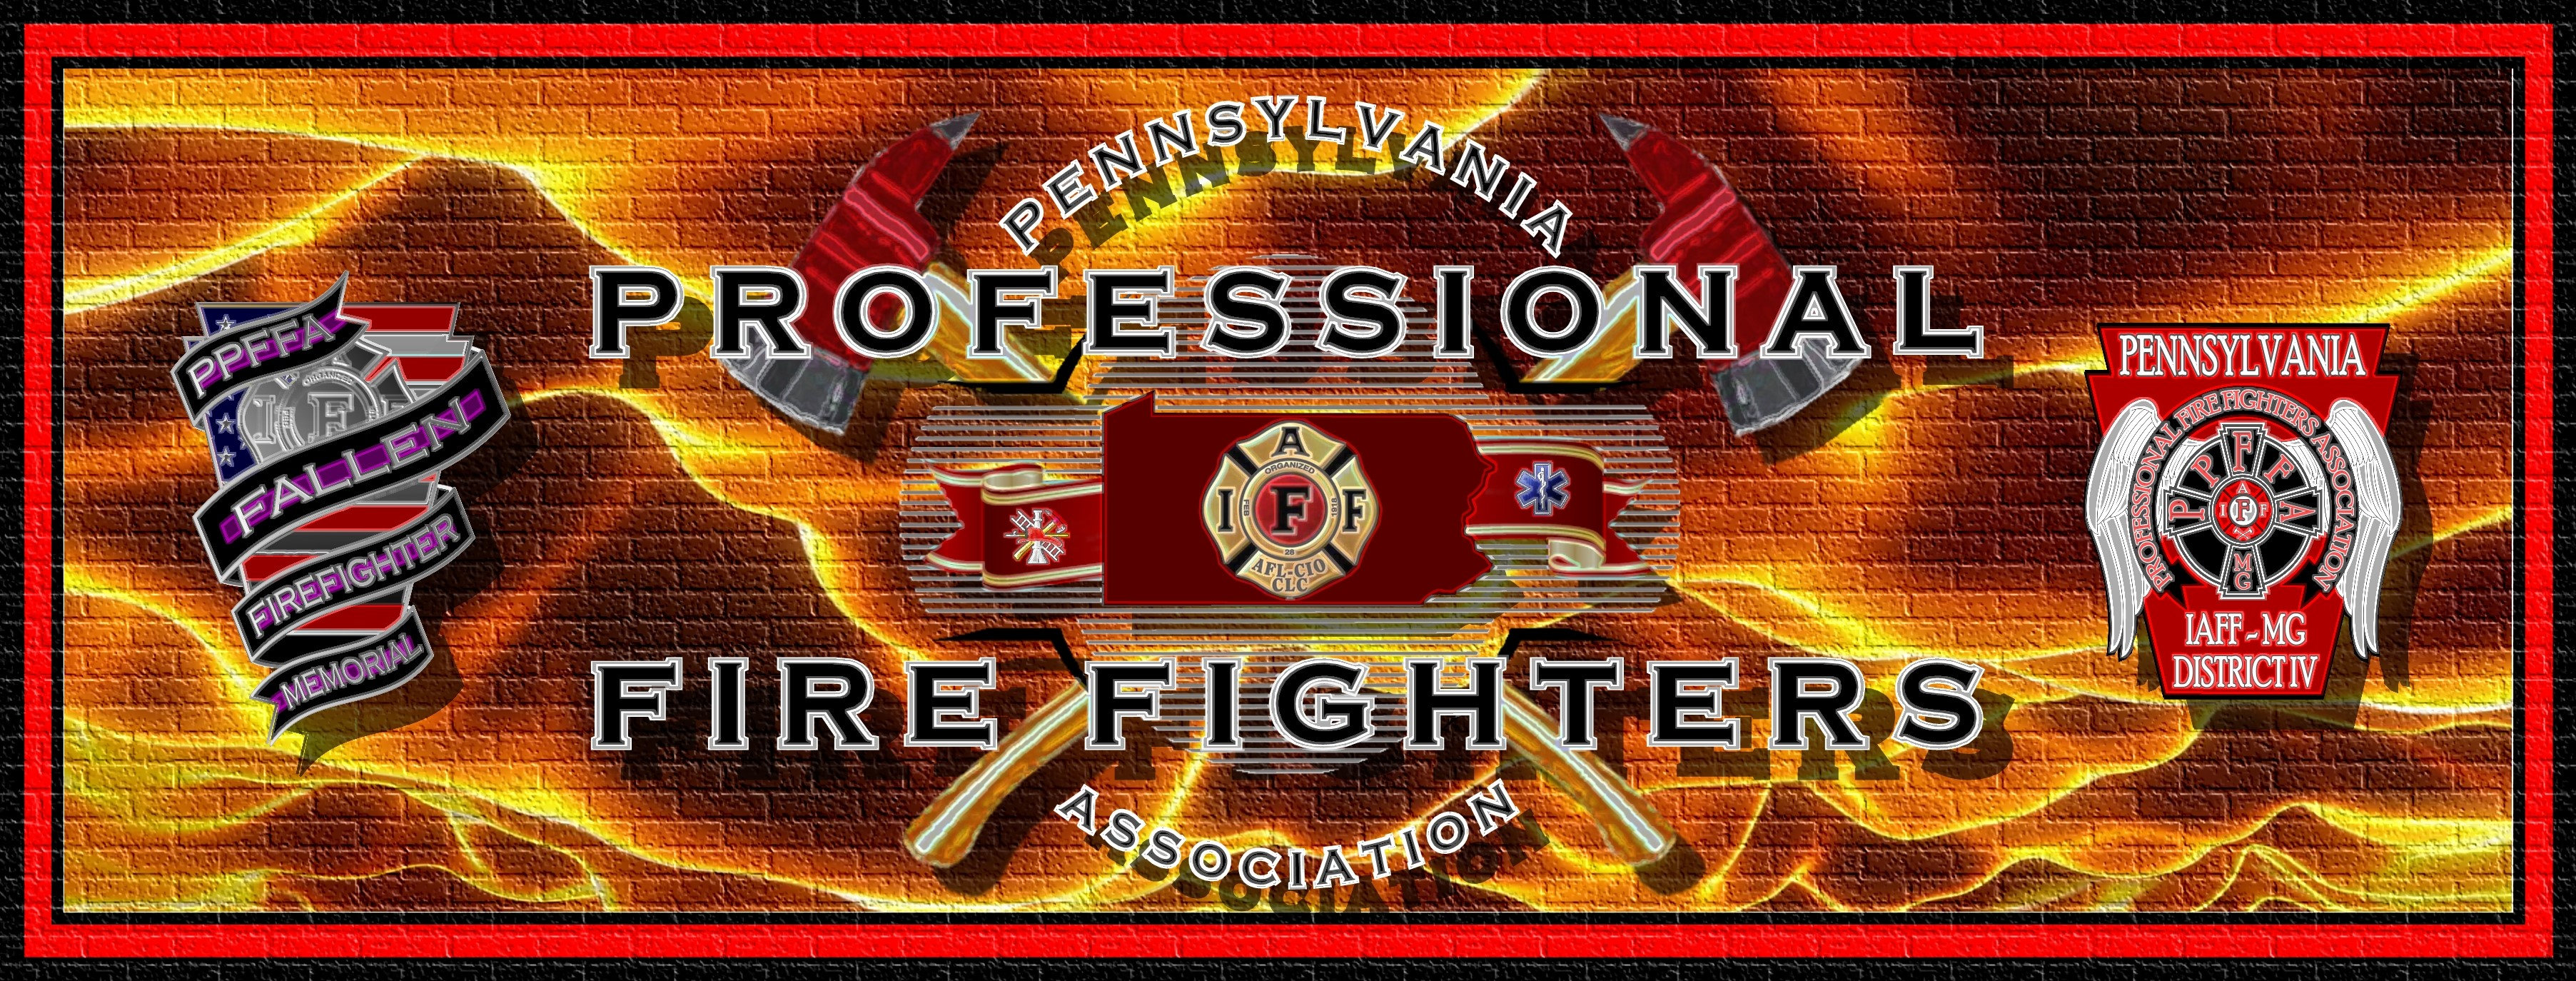 PA  PROF  FIRE FIGHTERS ASSOC  | About The PPFFA